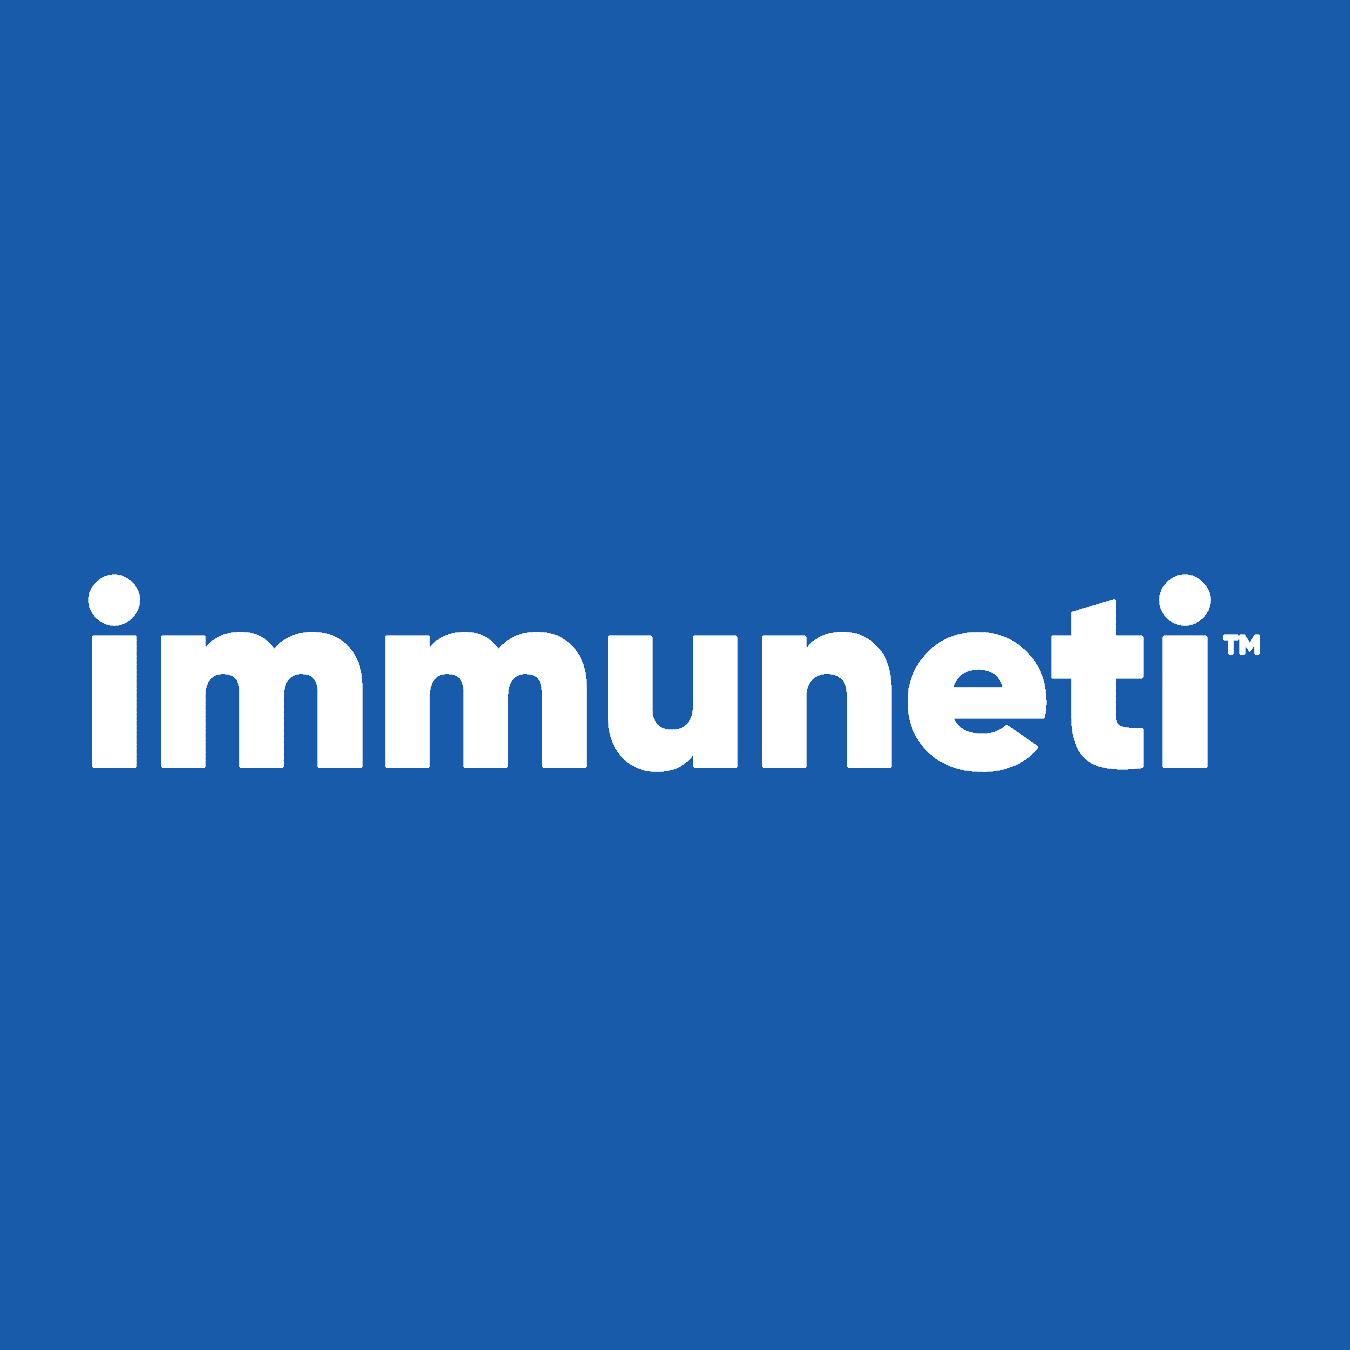 Save 10% on all orders at immuneti.com! SAVE10 for 10% off + Free Shipping!